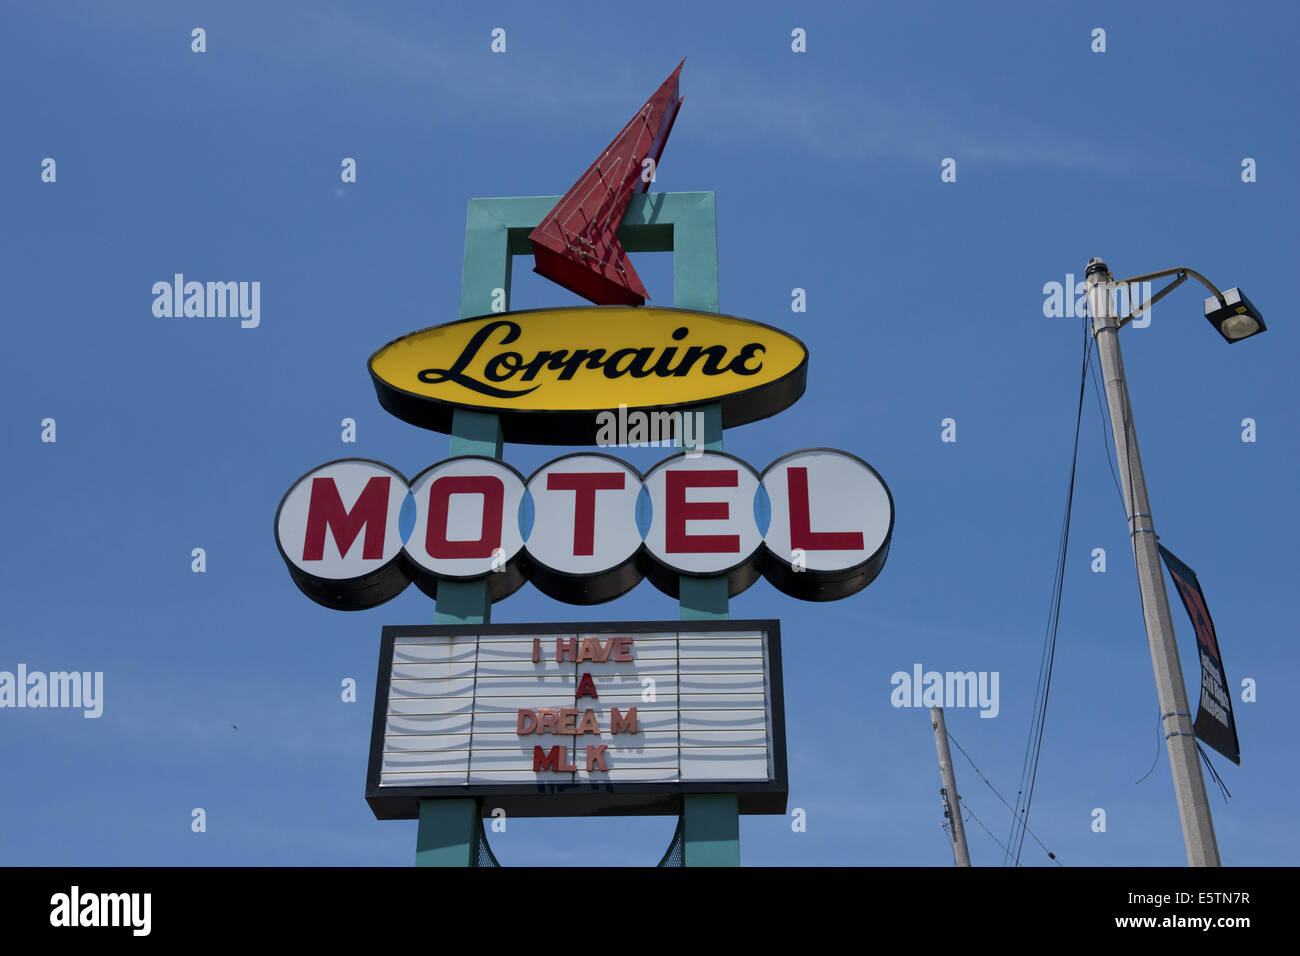 Lorraine Motel sign in Memphis, with 'I have a dream' written on it, site of Martin Luther King's assassination. Stock Photo